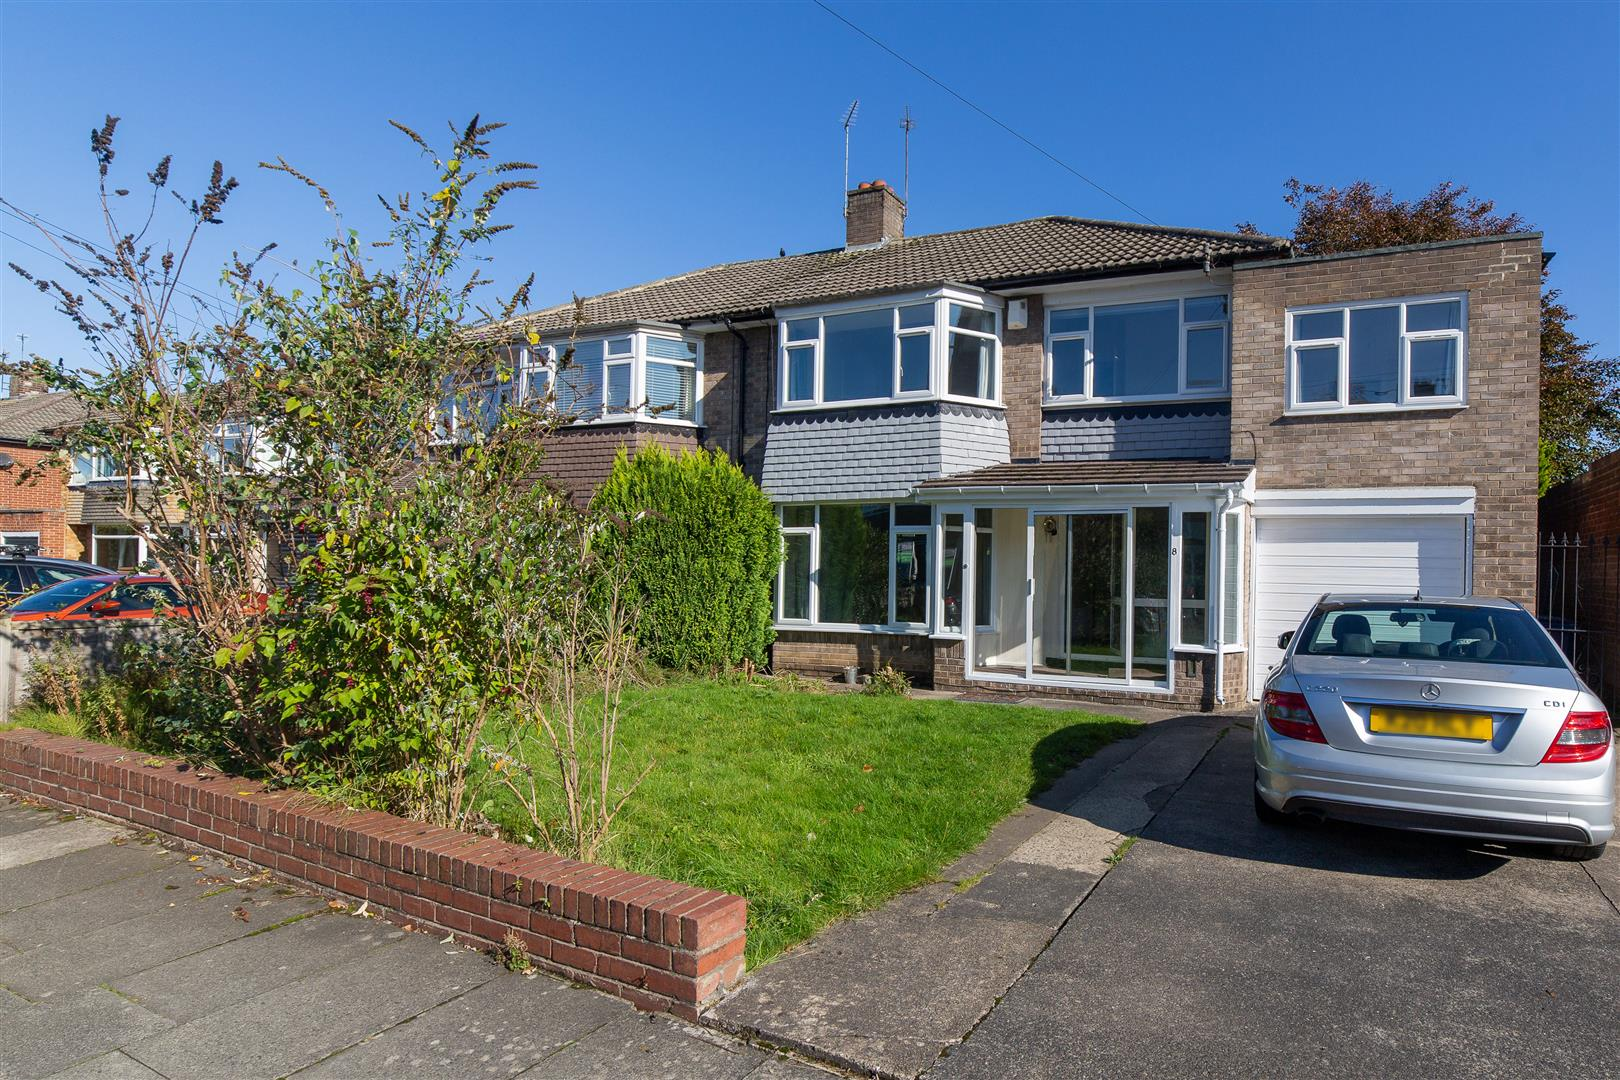 4 bed semi-detached house to rent in Newcastle Upon Tyne, NE3 5TB 0